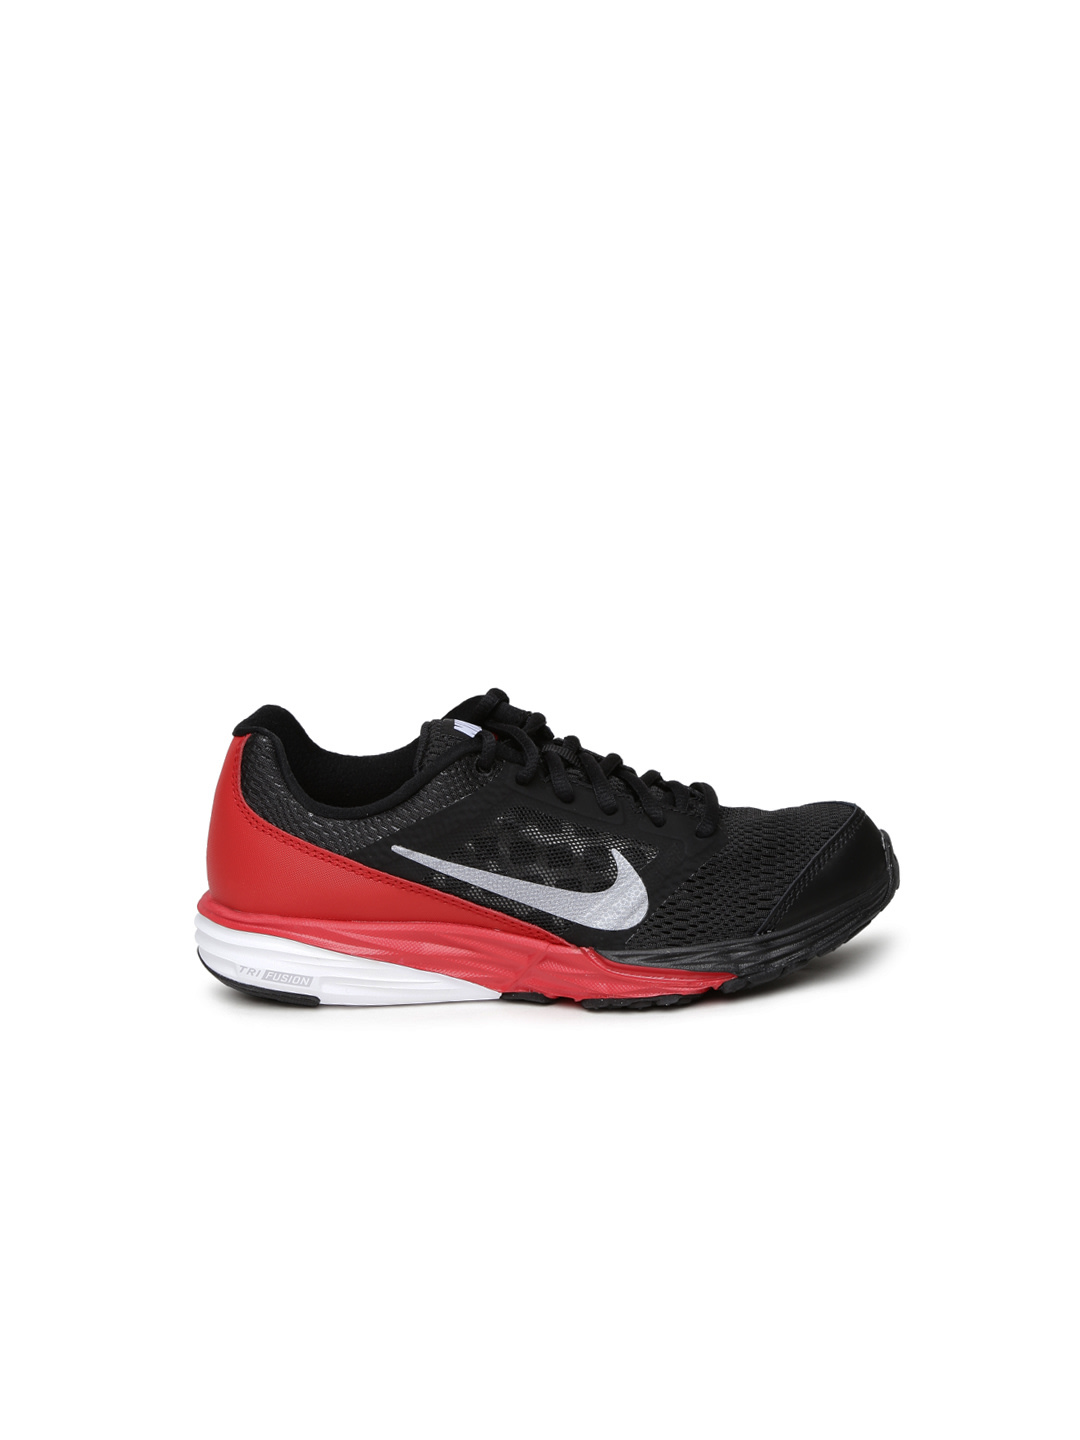 11455615715566-Nike-Boys-Sports-Shoes-3721455615715323-3